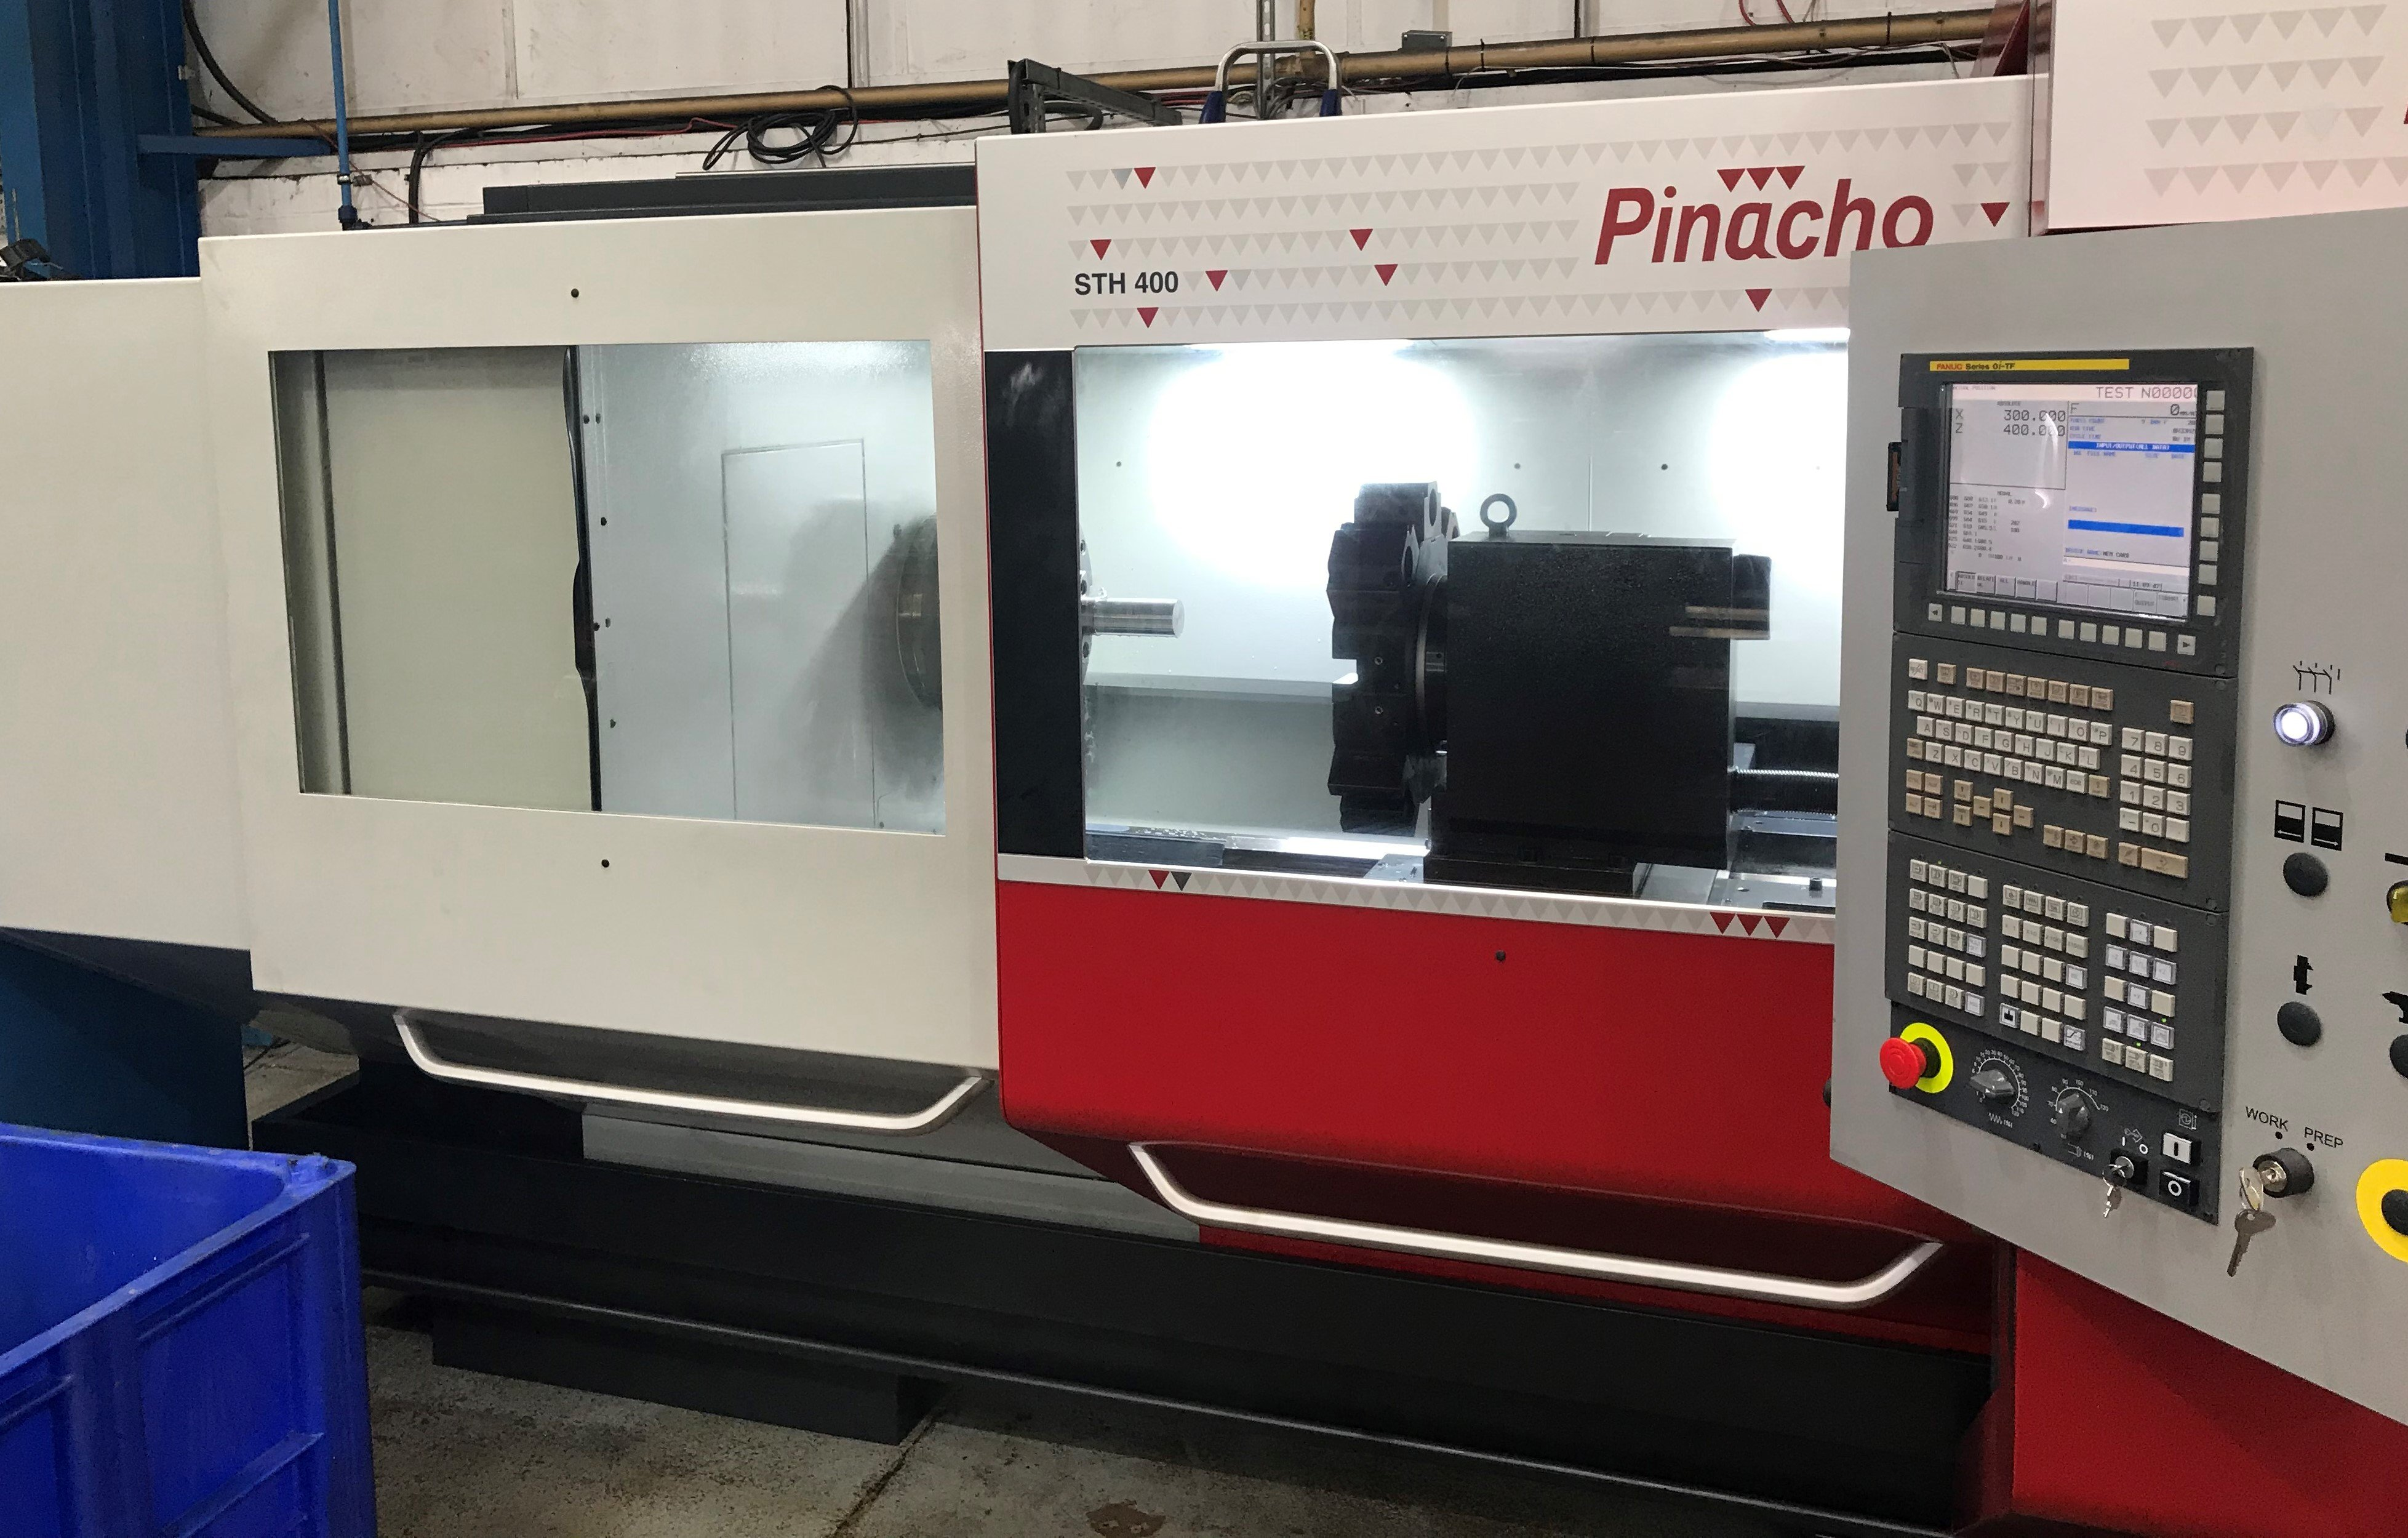 Our Pinacho STH 400 Is Now Installed & Ready For Action!